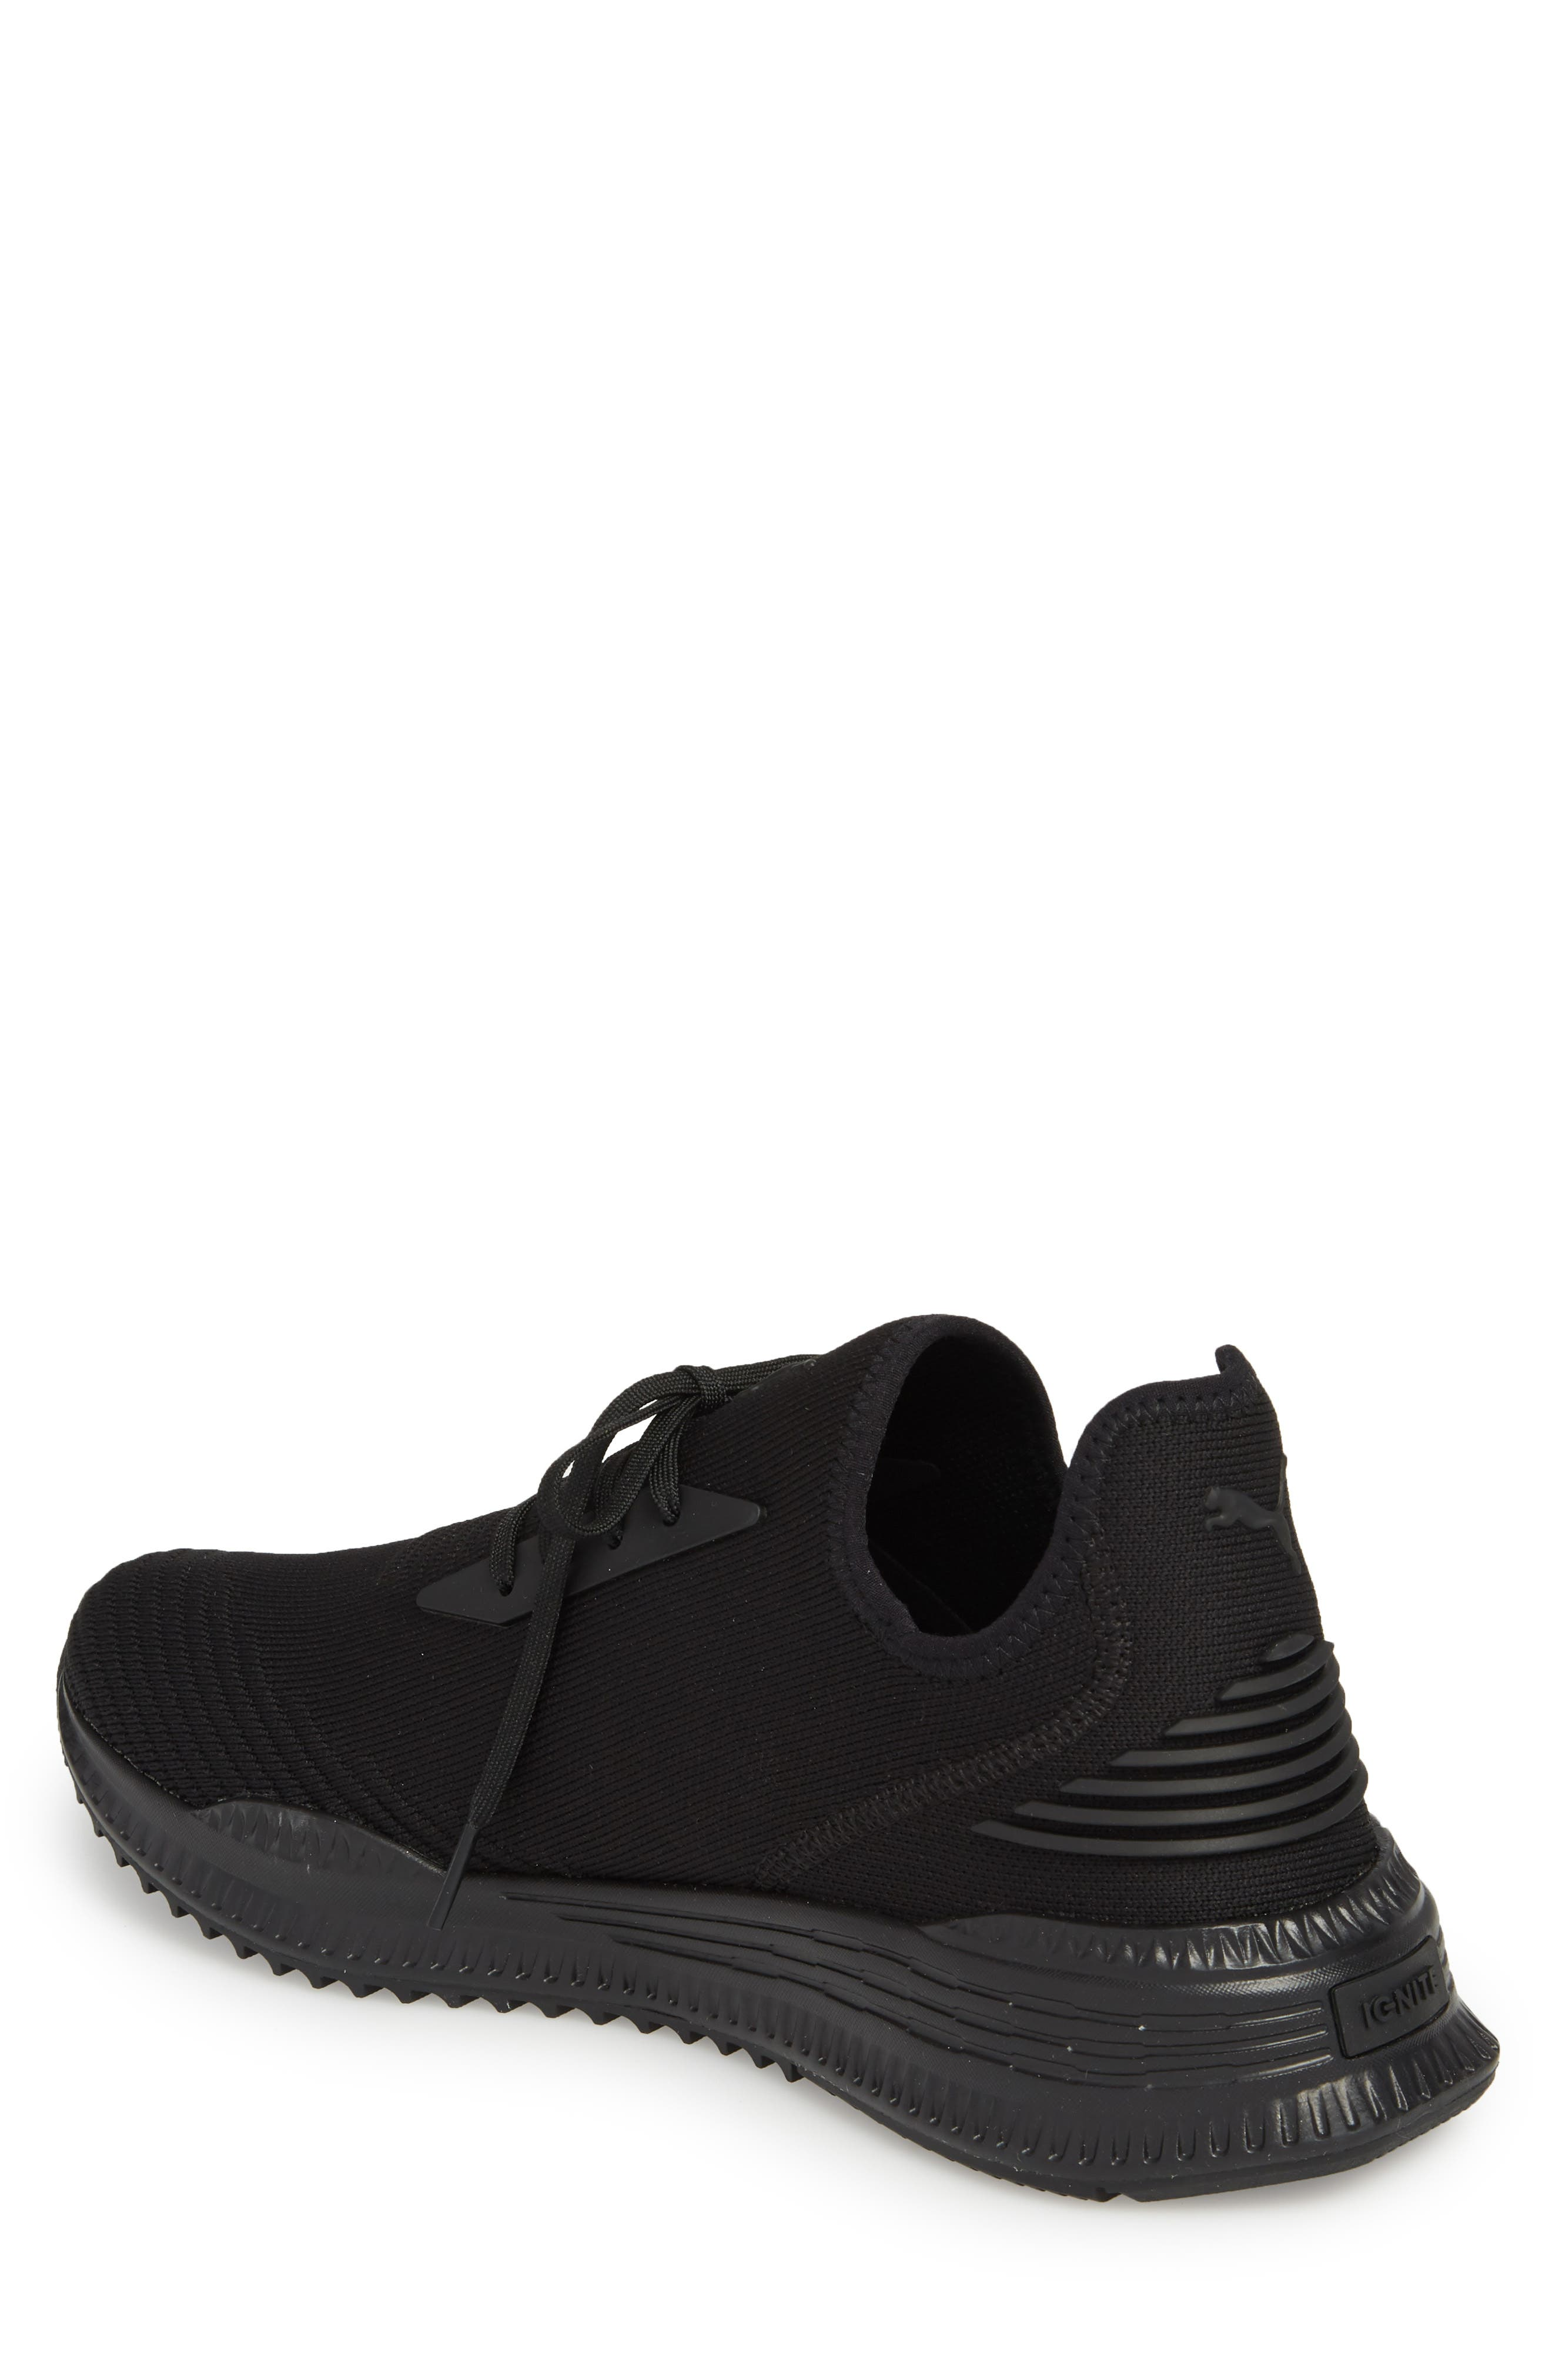 AVID evoKNIT Sneaker,                             Alternate thumbnail 2, color,                             Black/ Black